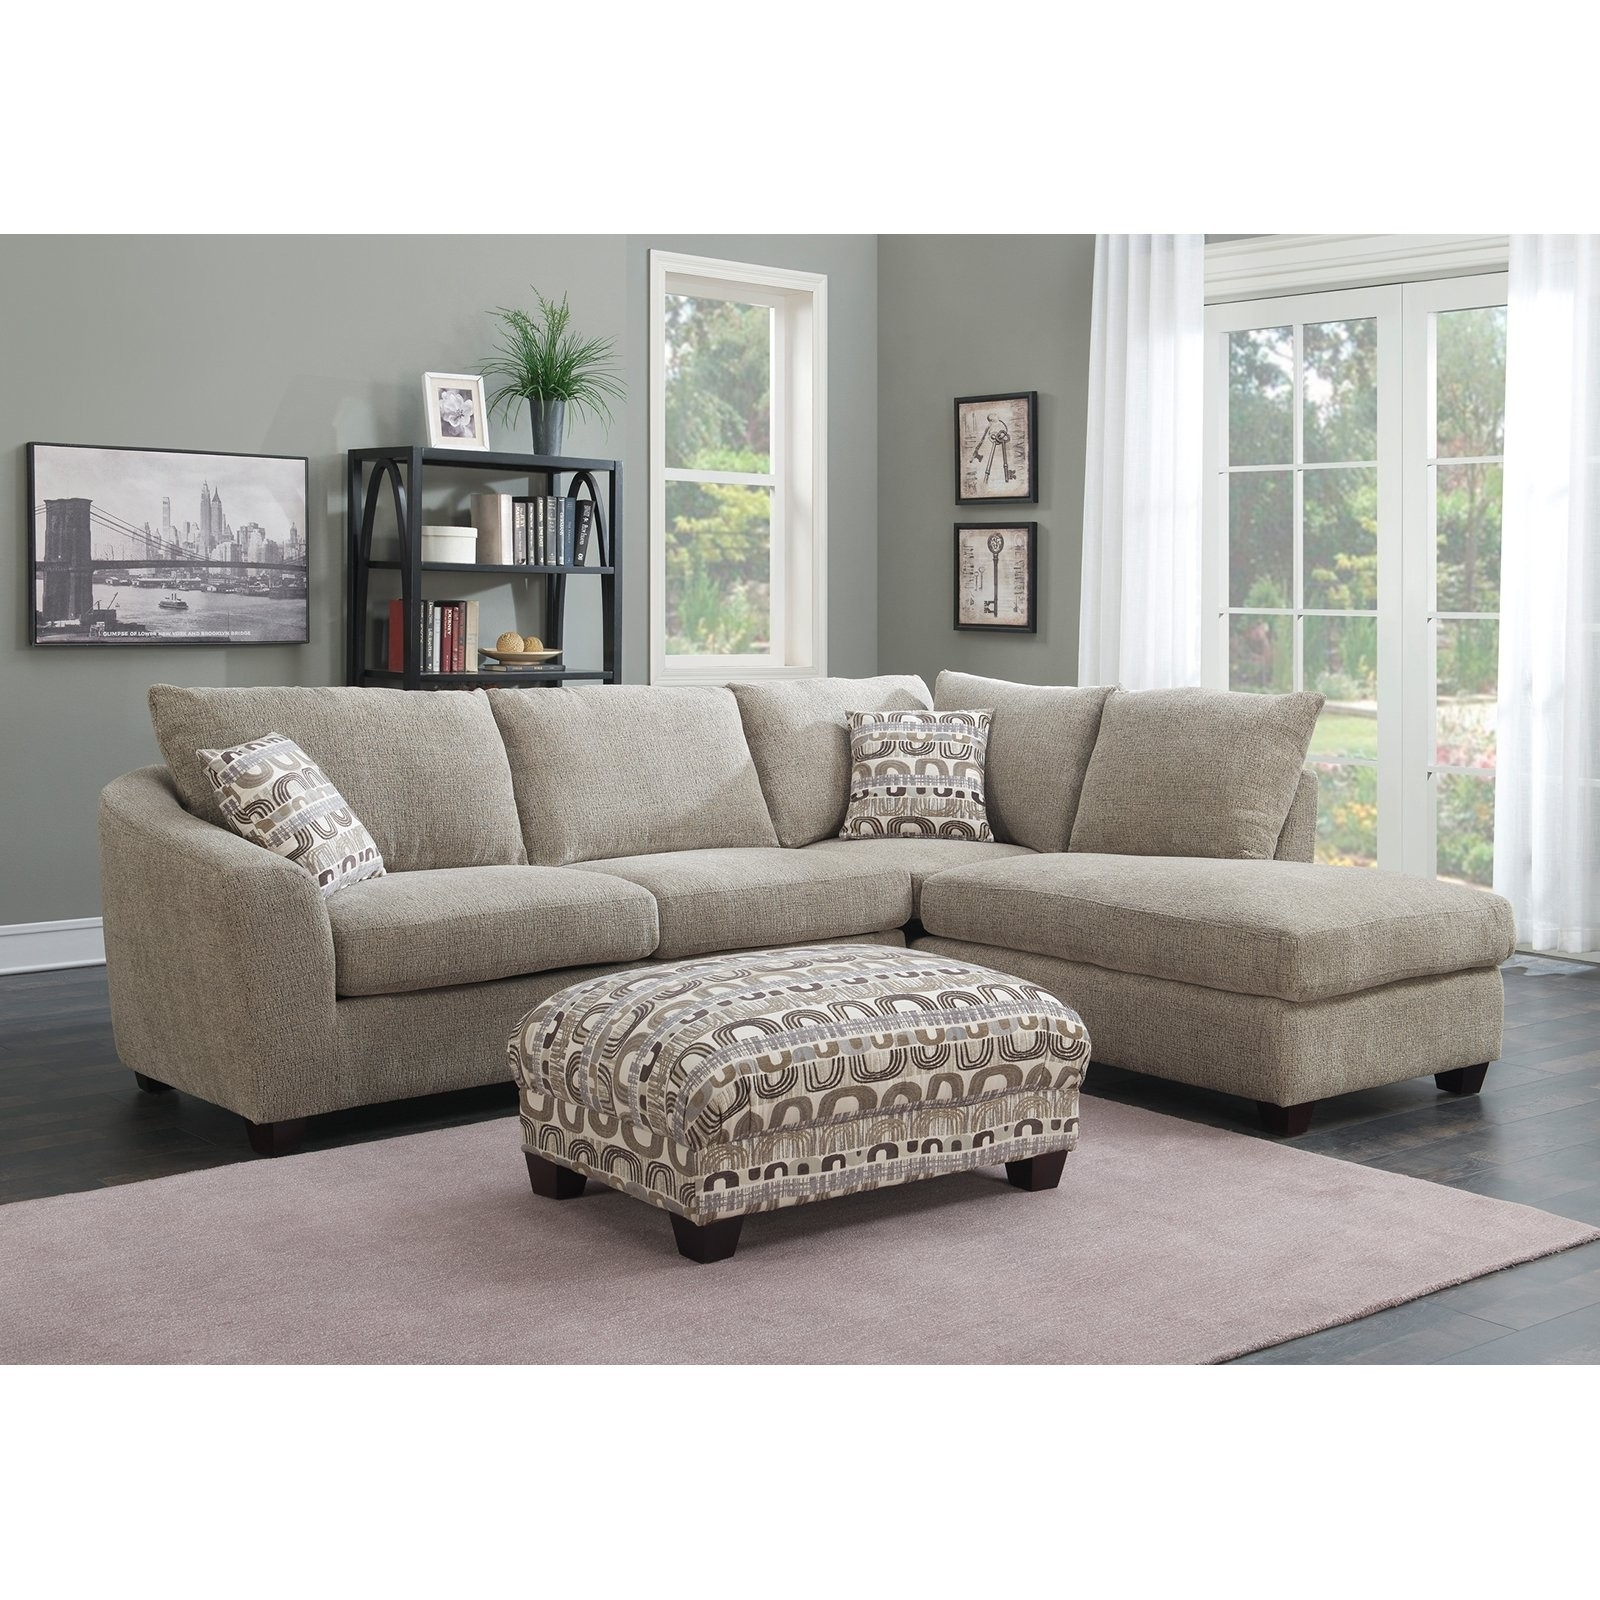 2 Piece Sectional With Chaise Avery W Laf Armless Living Spaces For Avery 2 Piece Sectionals With Raf Armless Chaise (Image 1 of 25)